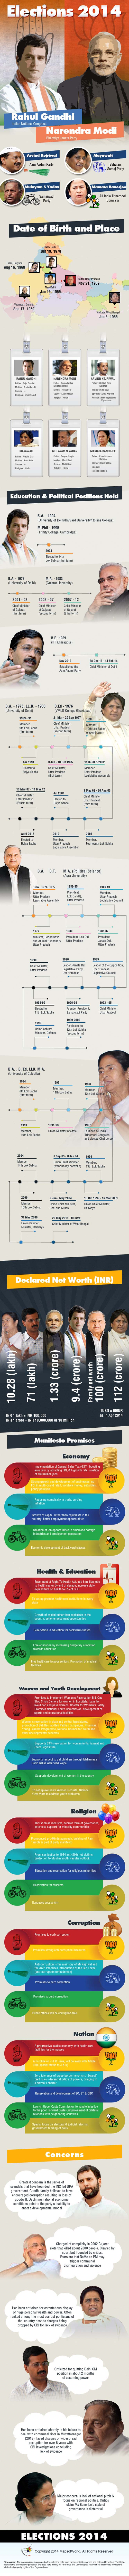 Indian Elections 2014 - Facts & Infographic on the Indian General elections candidates, covering their credentials, career highlights, manifesto promises, and more.